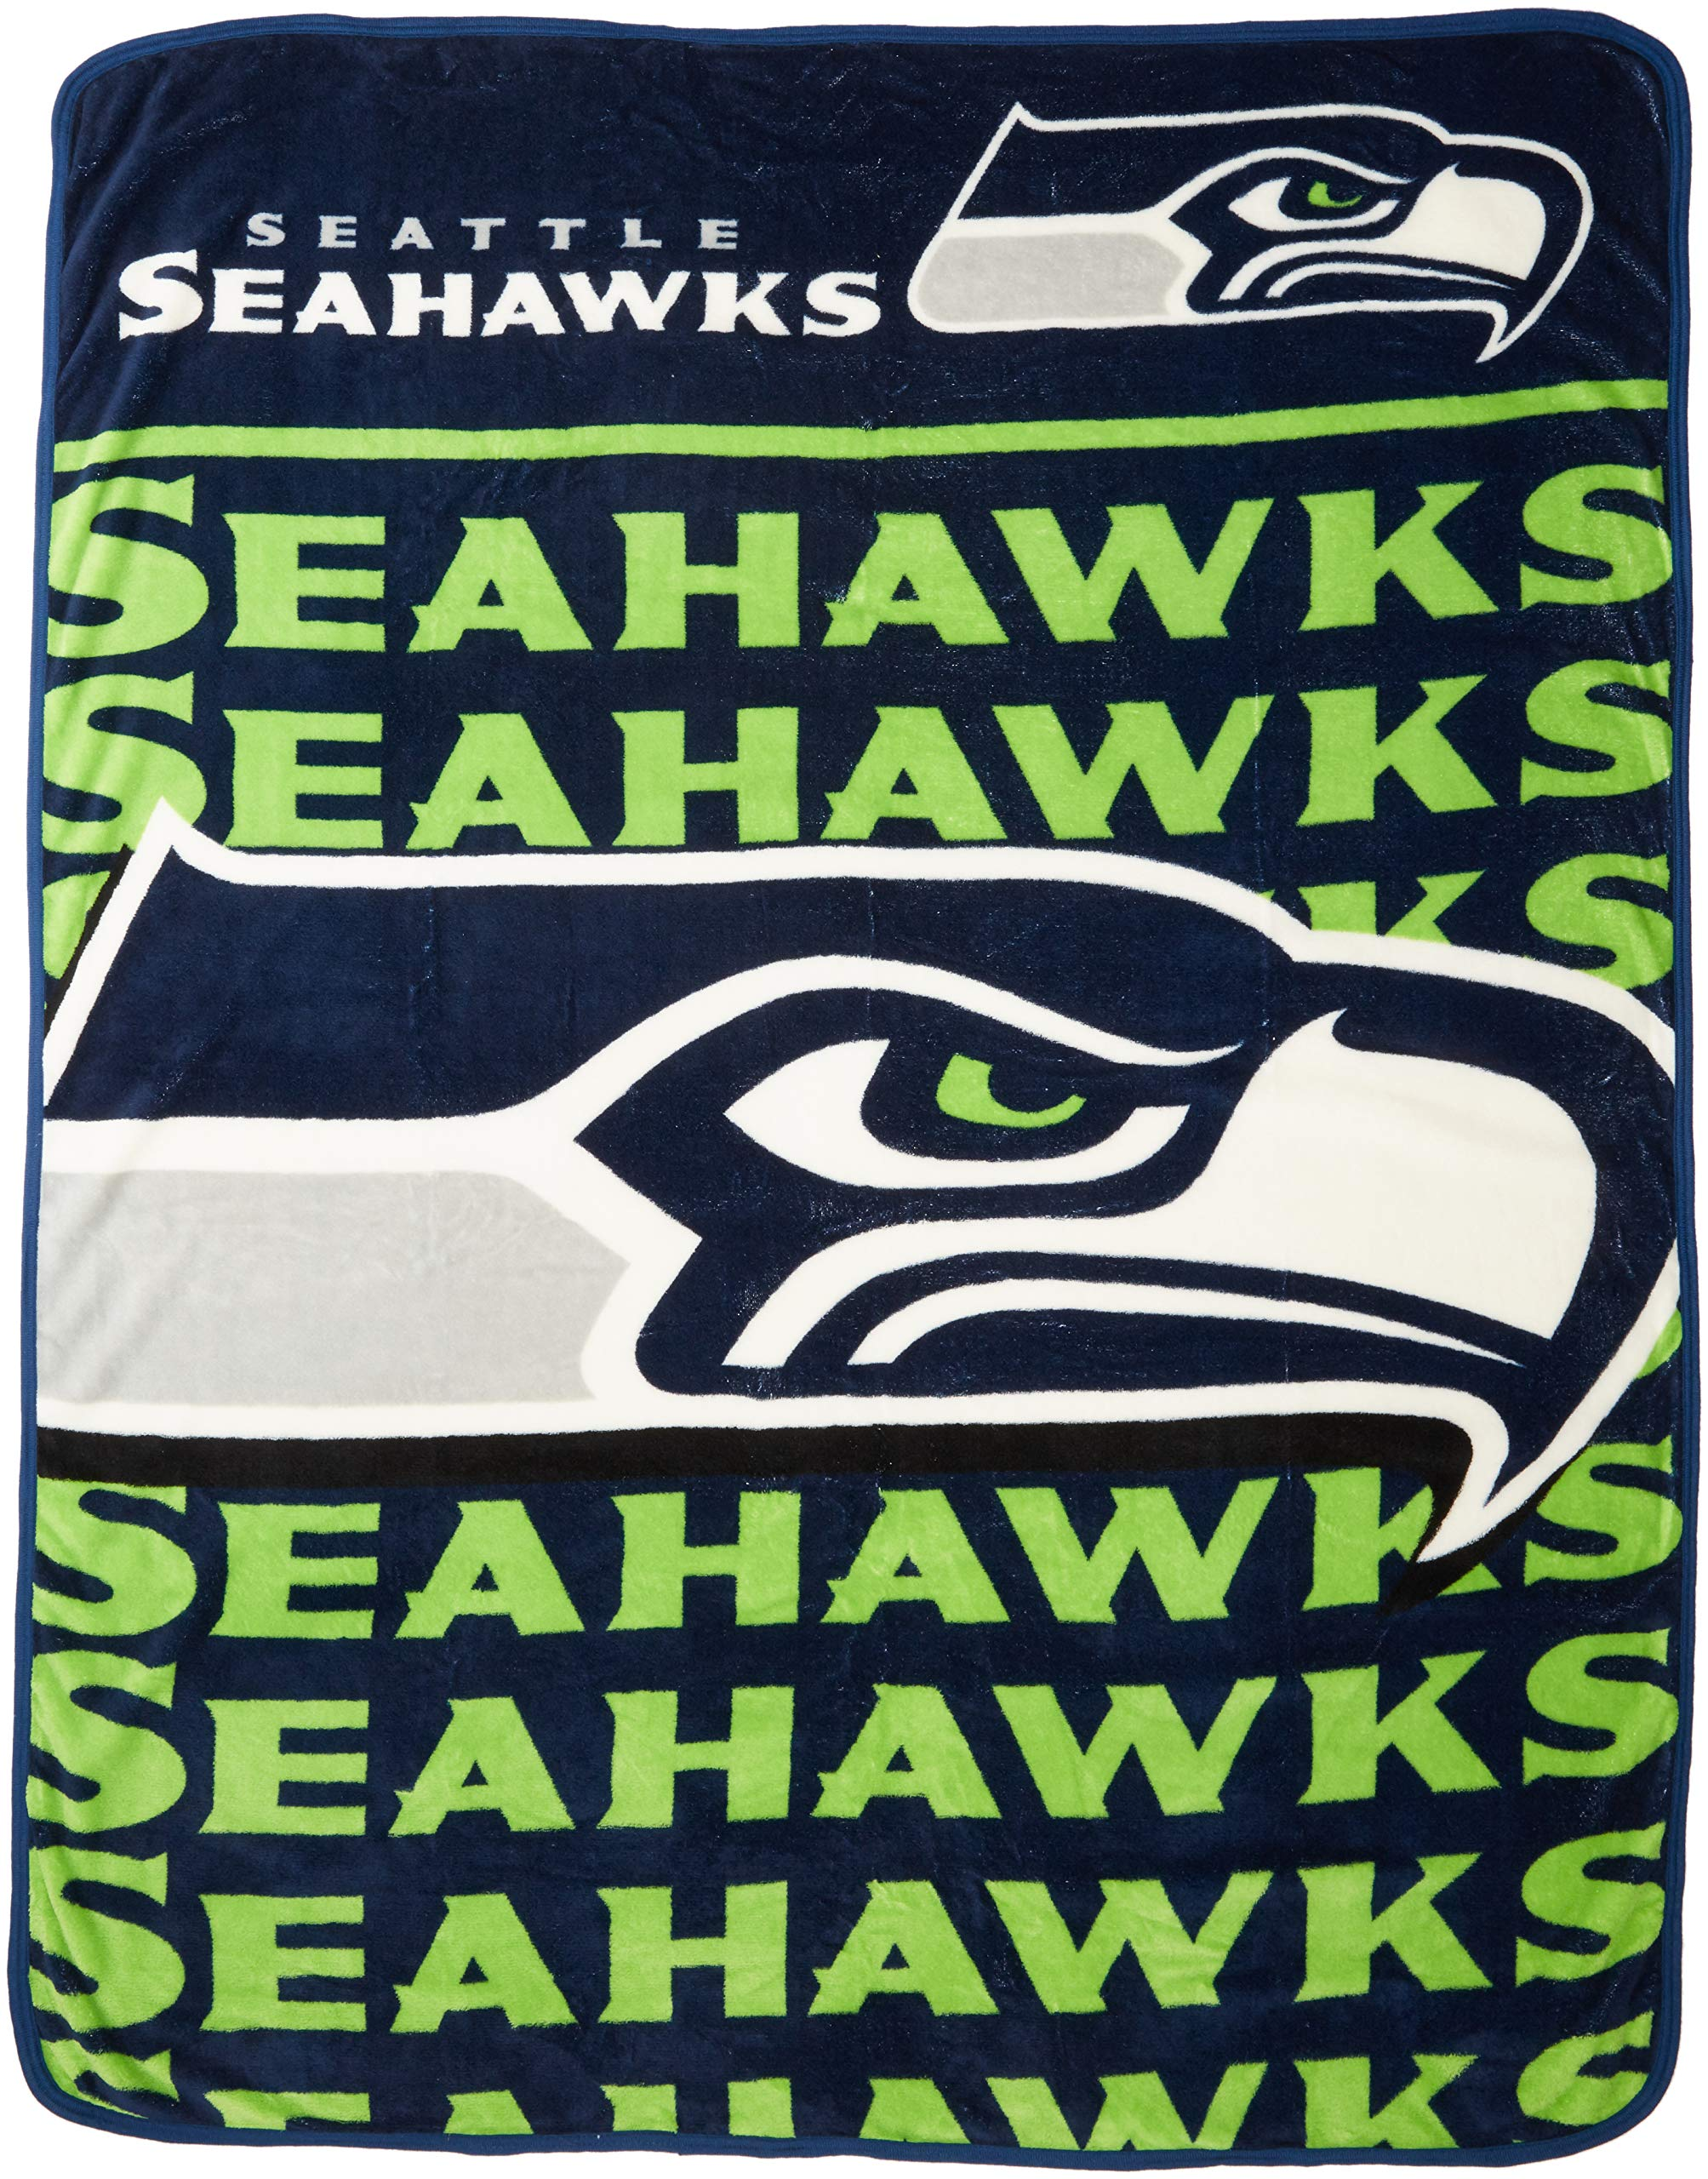 The Northwest Company Officially Licensed NFL Seattle Seahawks Livin Large Micro Raschel Throw Blanket, 46'' x 60'', Multi Color by The Northwest Company